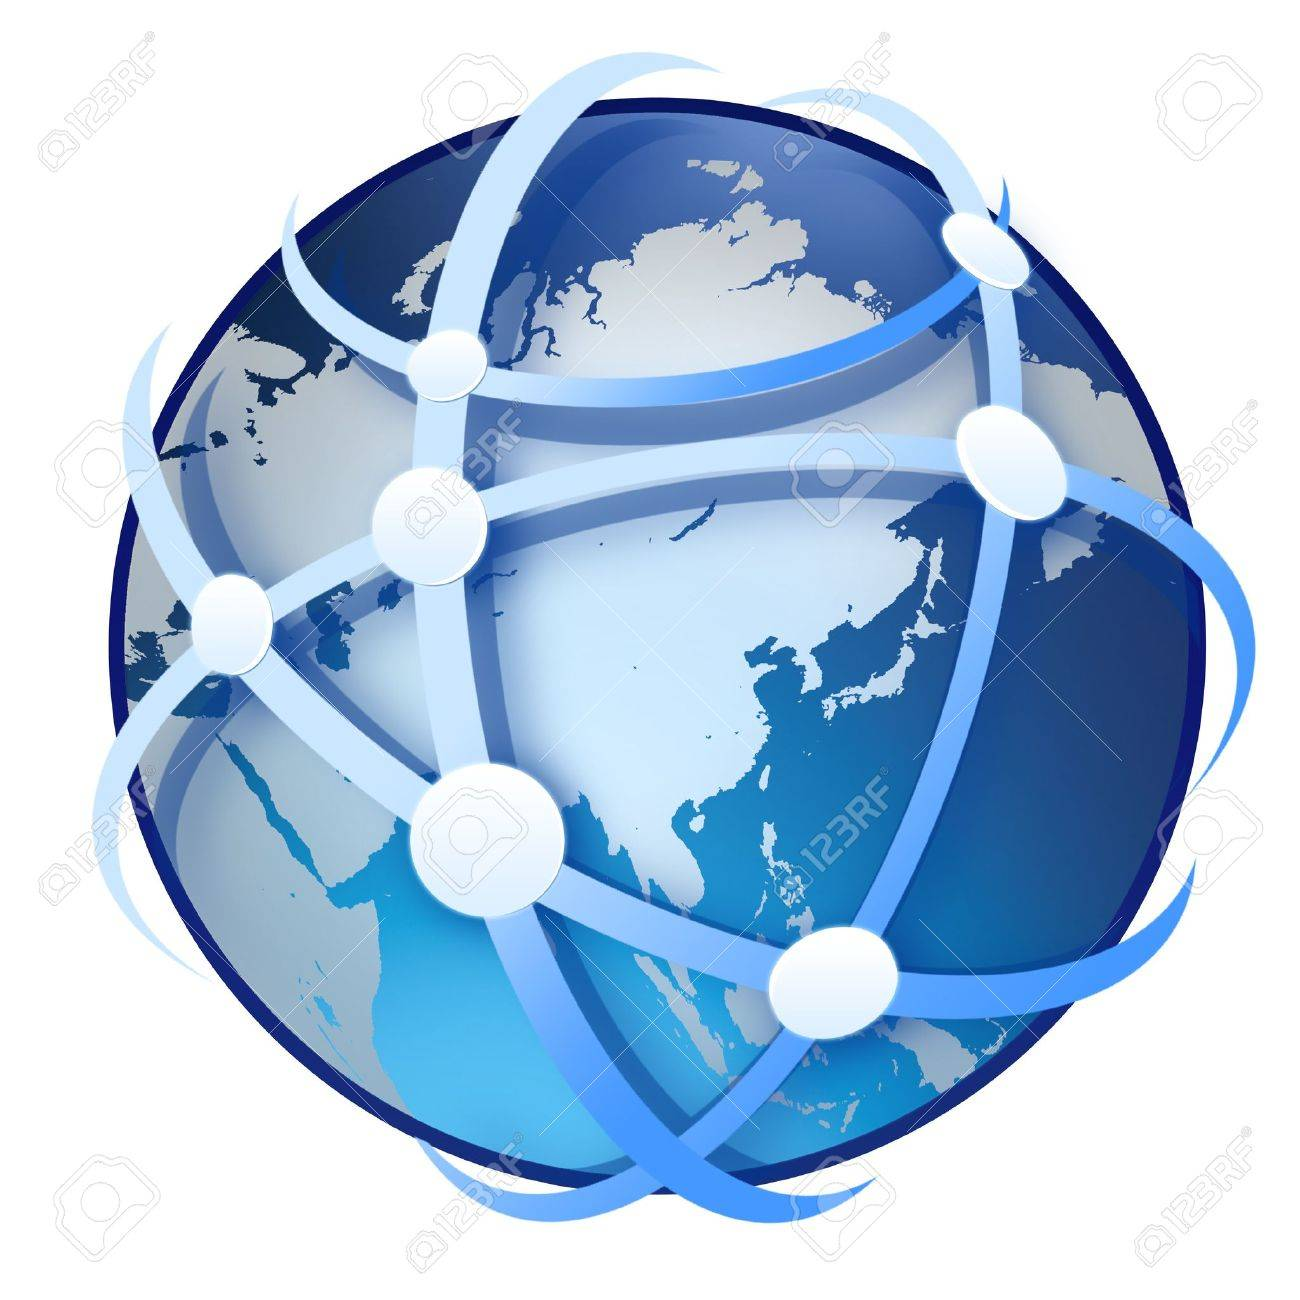 earth globe on white background Stock Photo - 9652636